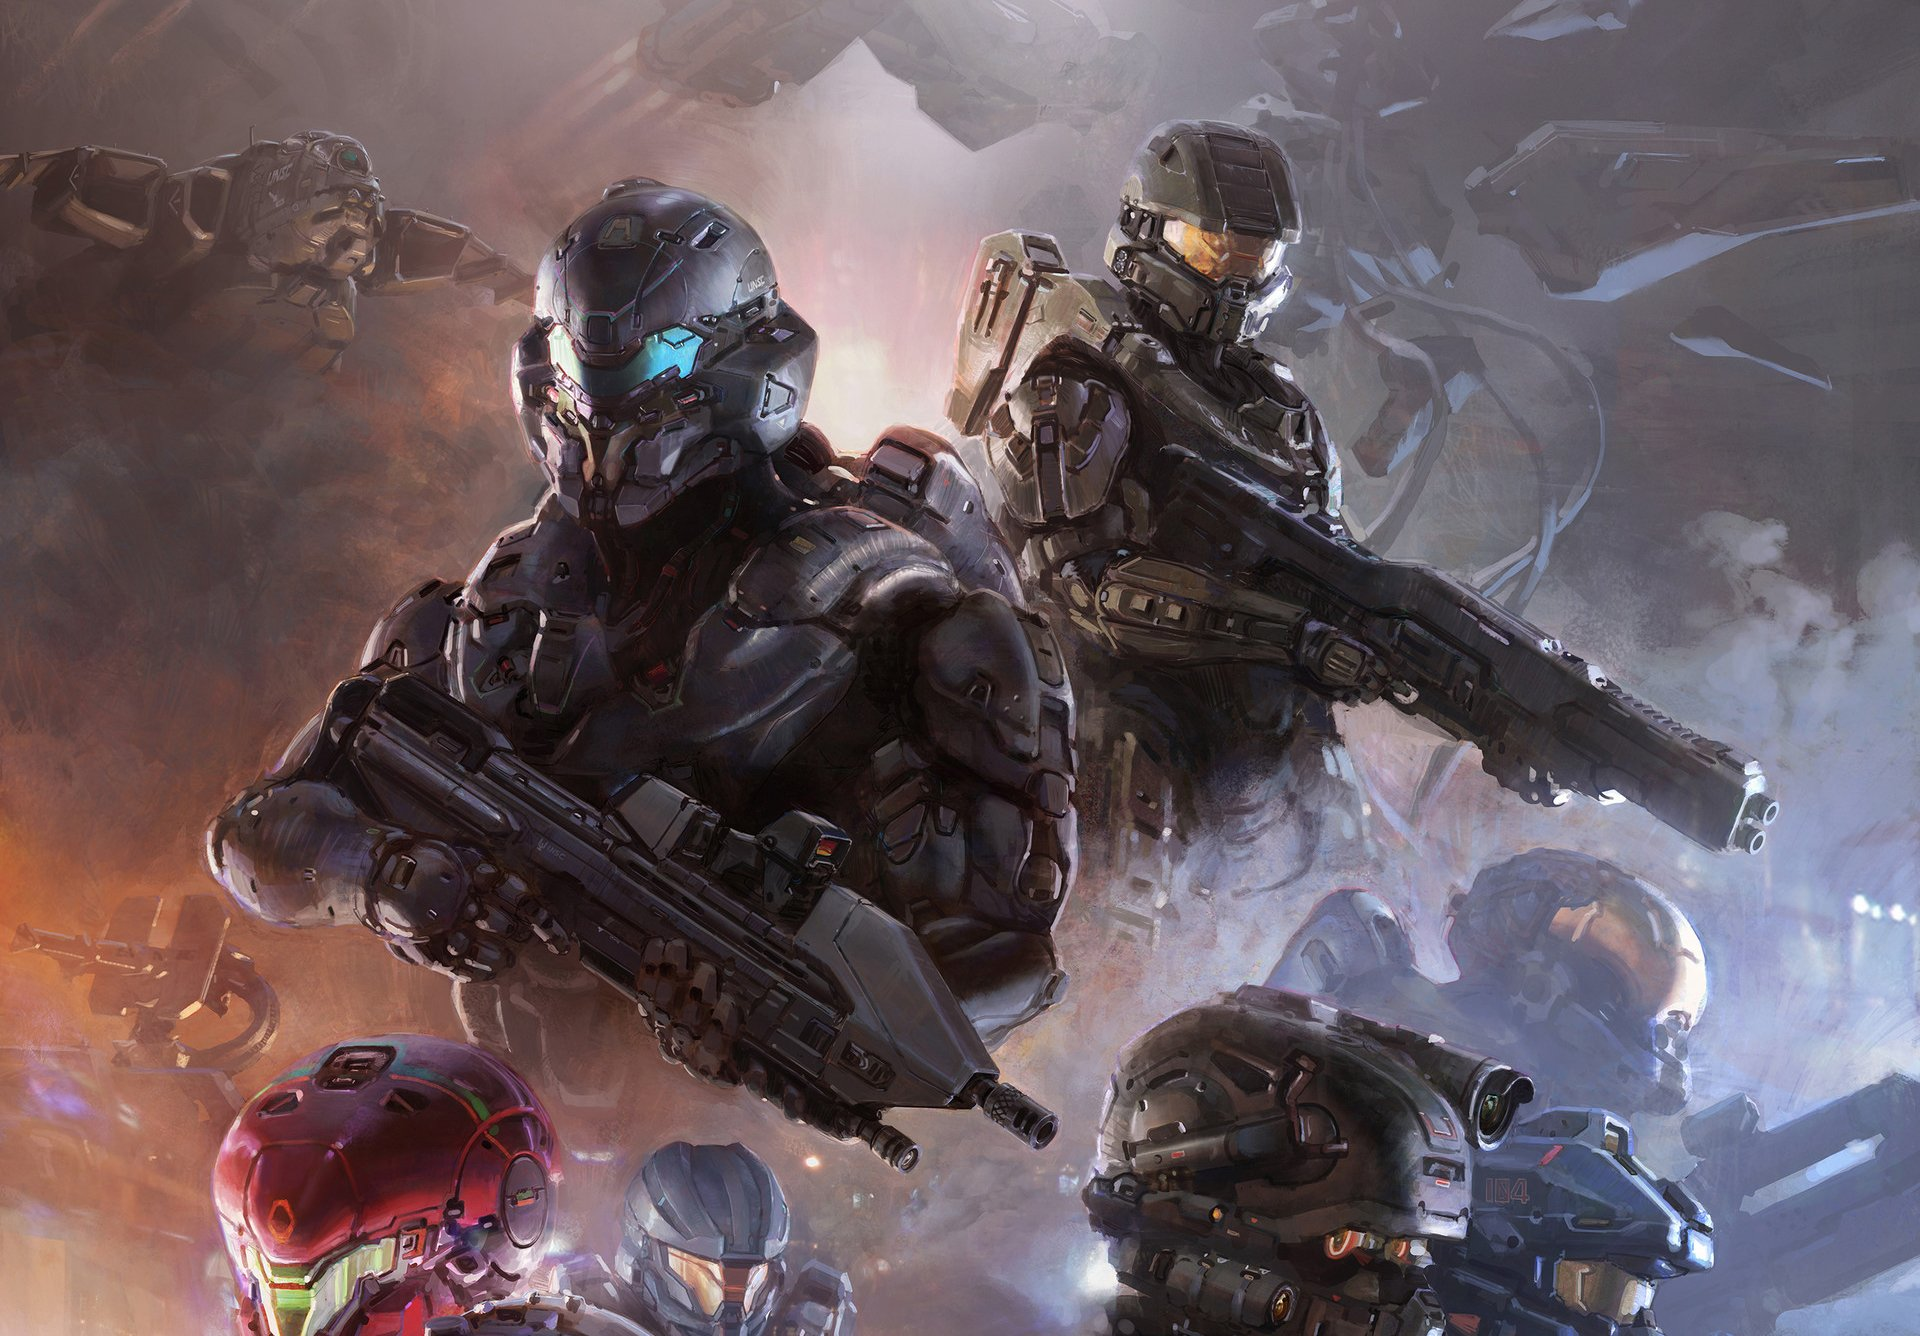 Halo 5 Guardians Hd Wallpaper Background Image 1920x1336 Id